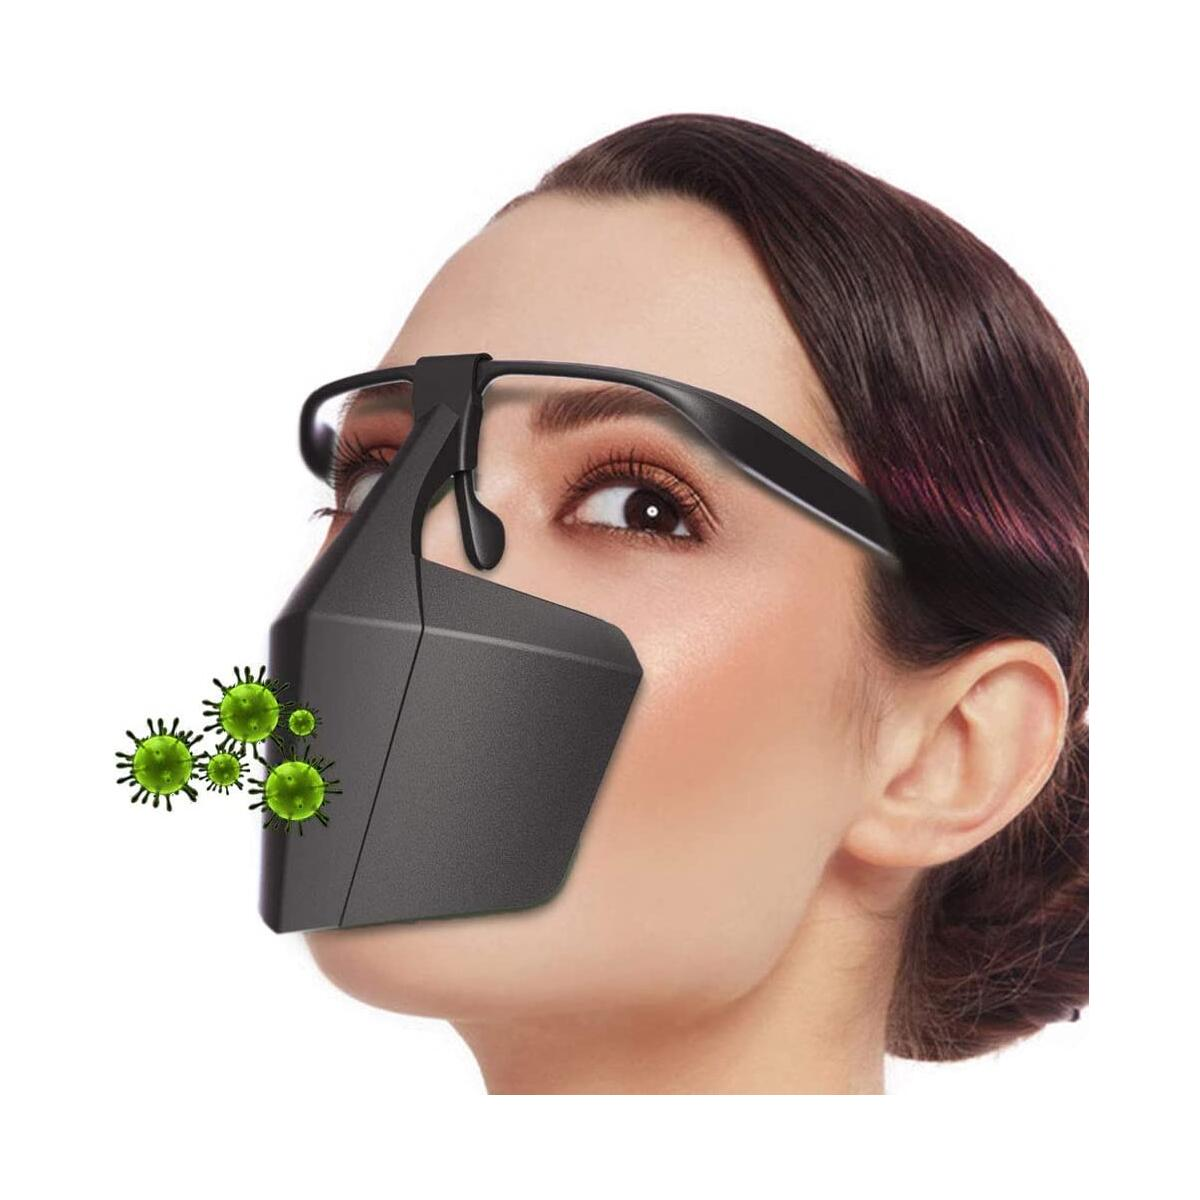 Nose Protection Cover | Protect your nose with Nose Shield | Unisex | for any head and nose size | Powerlap Pro | Nose Shield Pro Gear Matt Black | for Protection & Kitchen and General protection